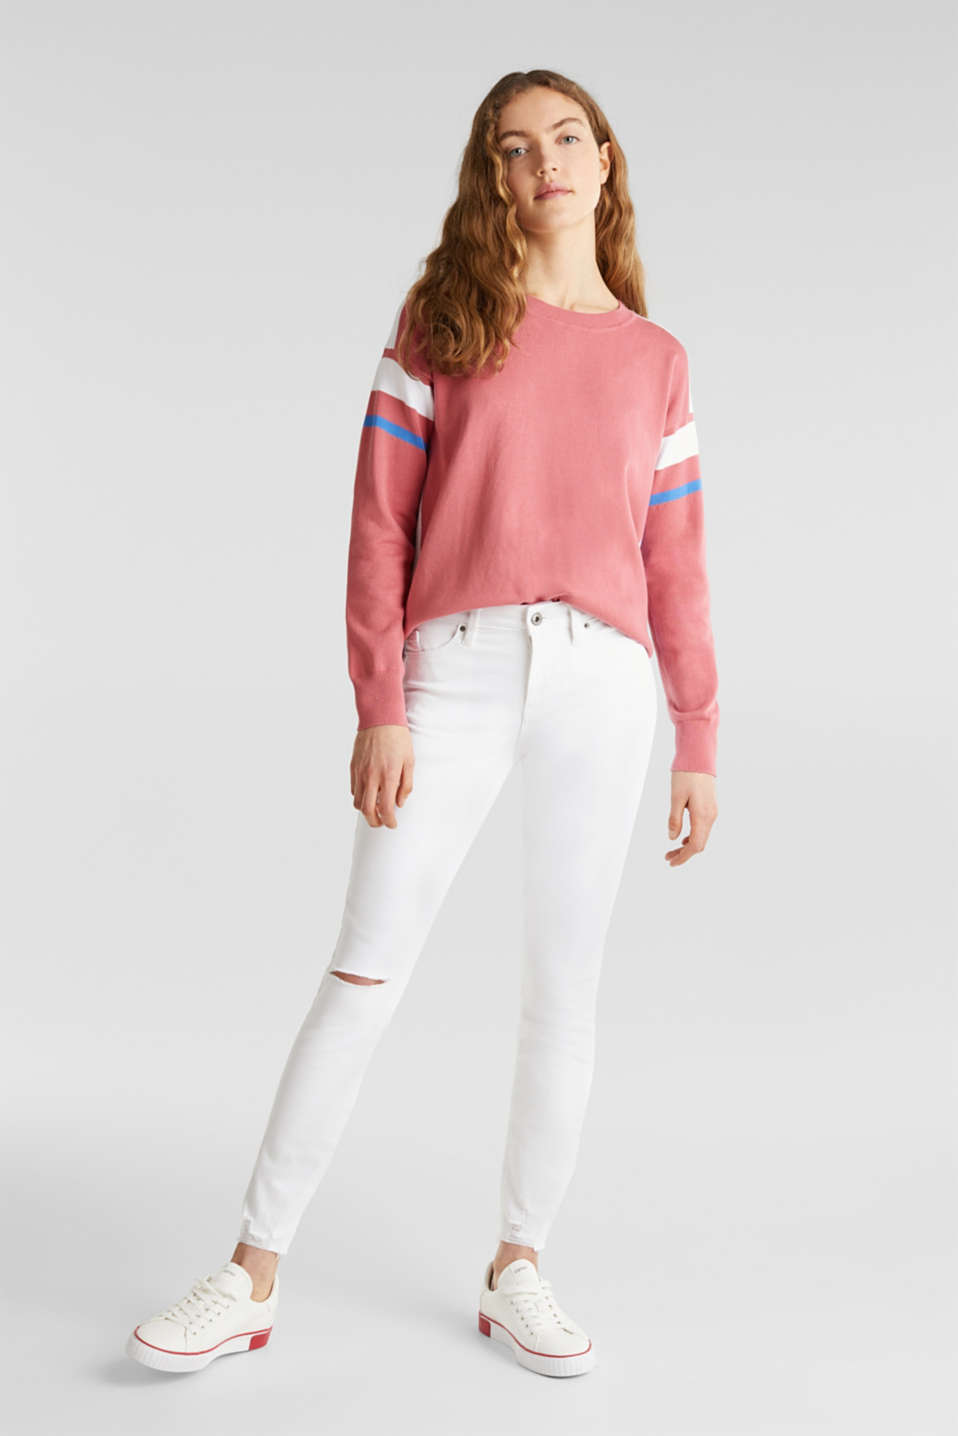 Jumper with sporty stripes, BLUSH 3, detail image number 1